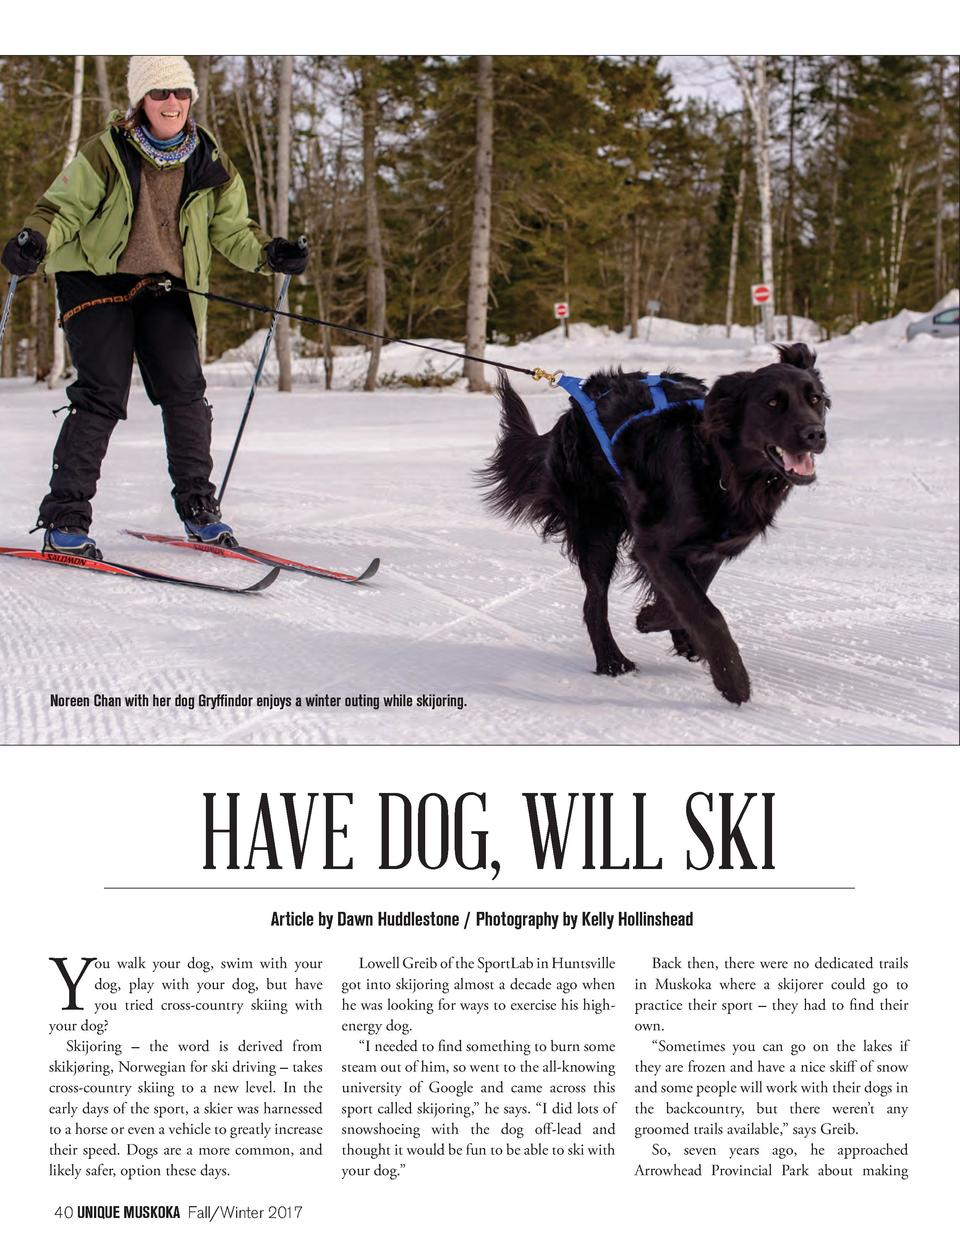 Noreen Chan with her dog Gryffindor enjoys a winter outing while skijoring.  HAVE DOG, WILL SKI Article by Dawn Huddleston...